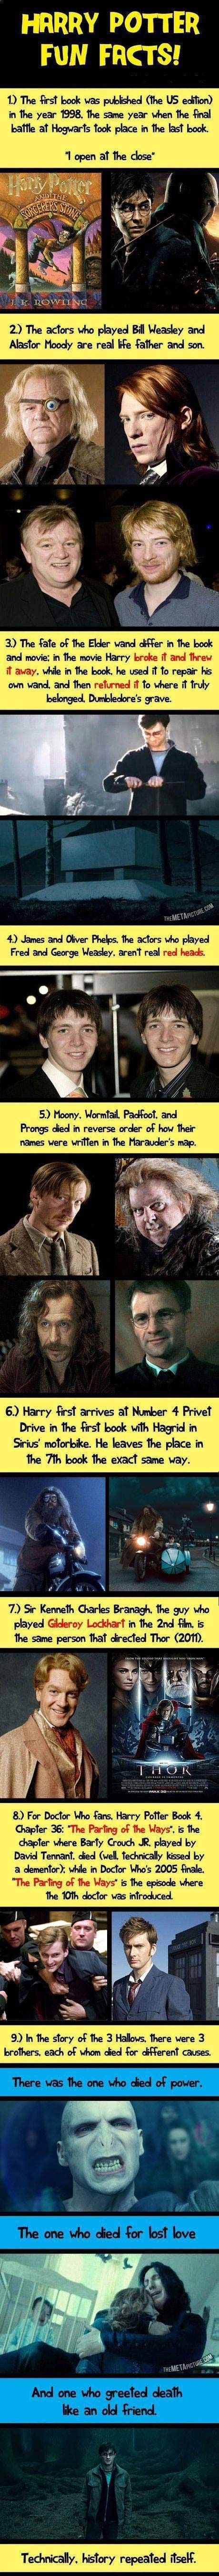 10 Astonishing Facts About Harry Potter I don't rally care about #8 (I can't stand dr. who) but the rest are pretty cool.